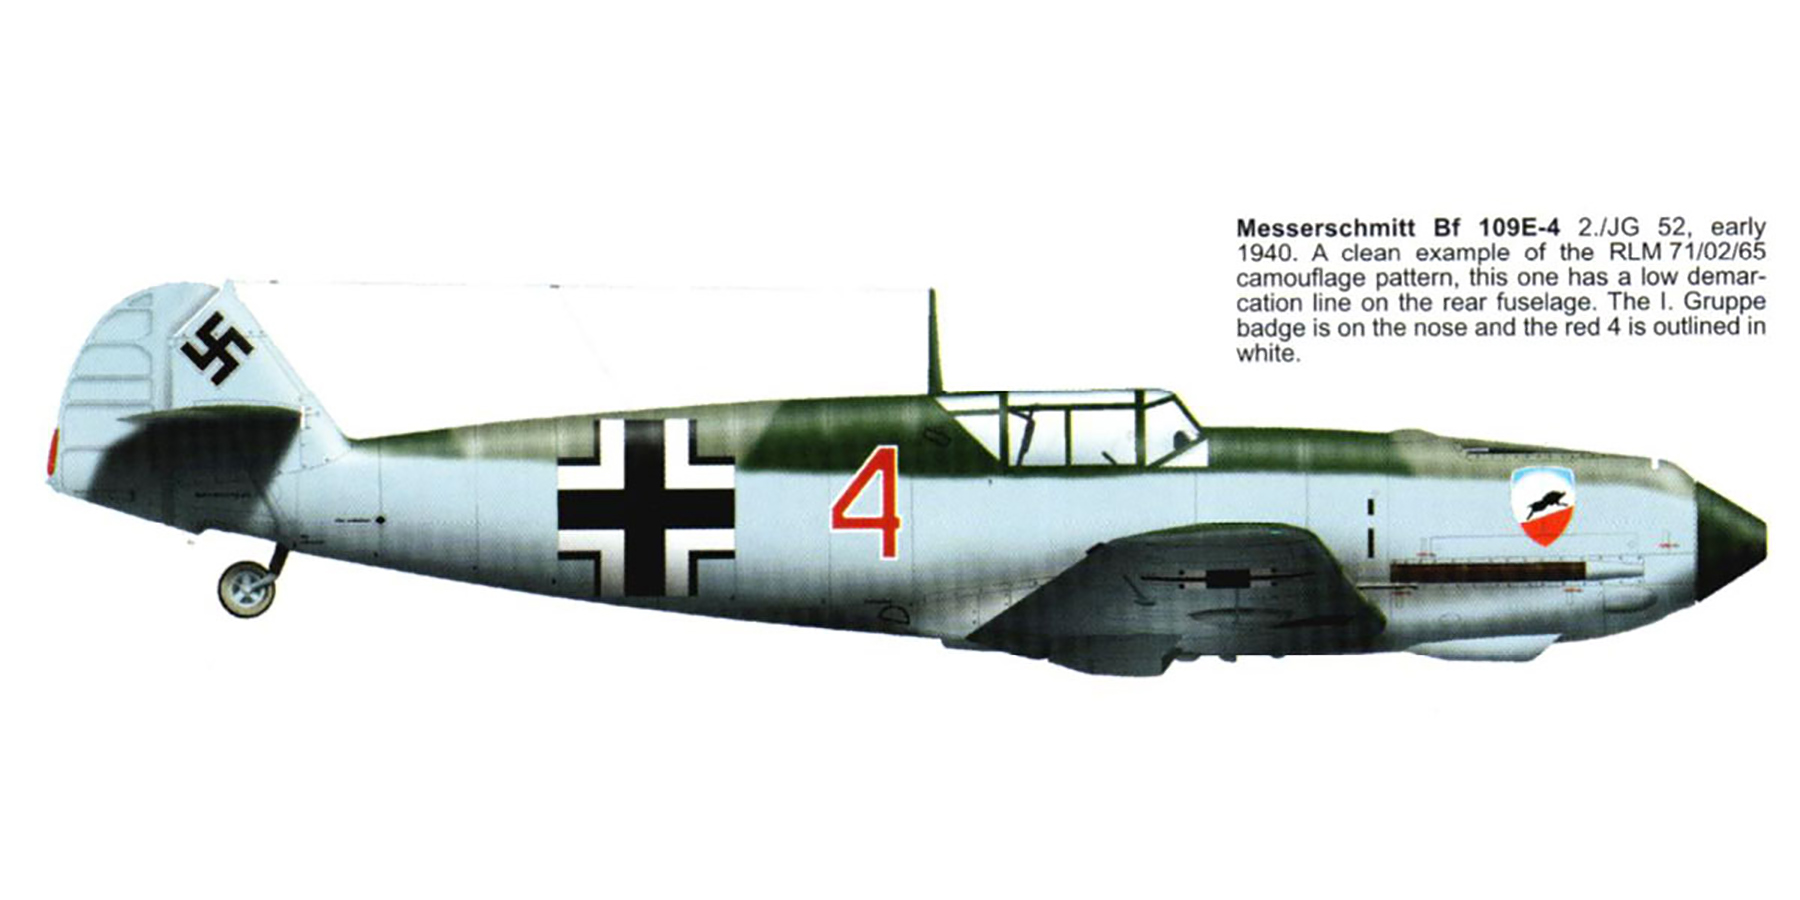 Messerschmitt Bf 109E3 2.JG52 Red 4 Battle of Briatin 1940 0A